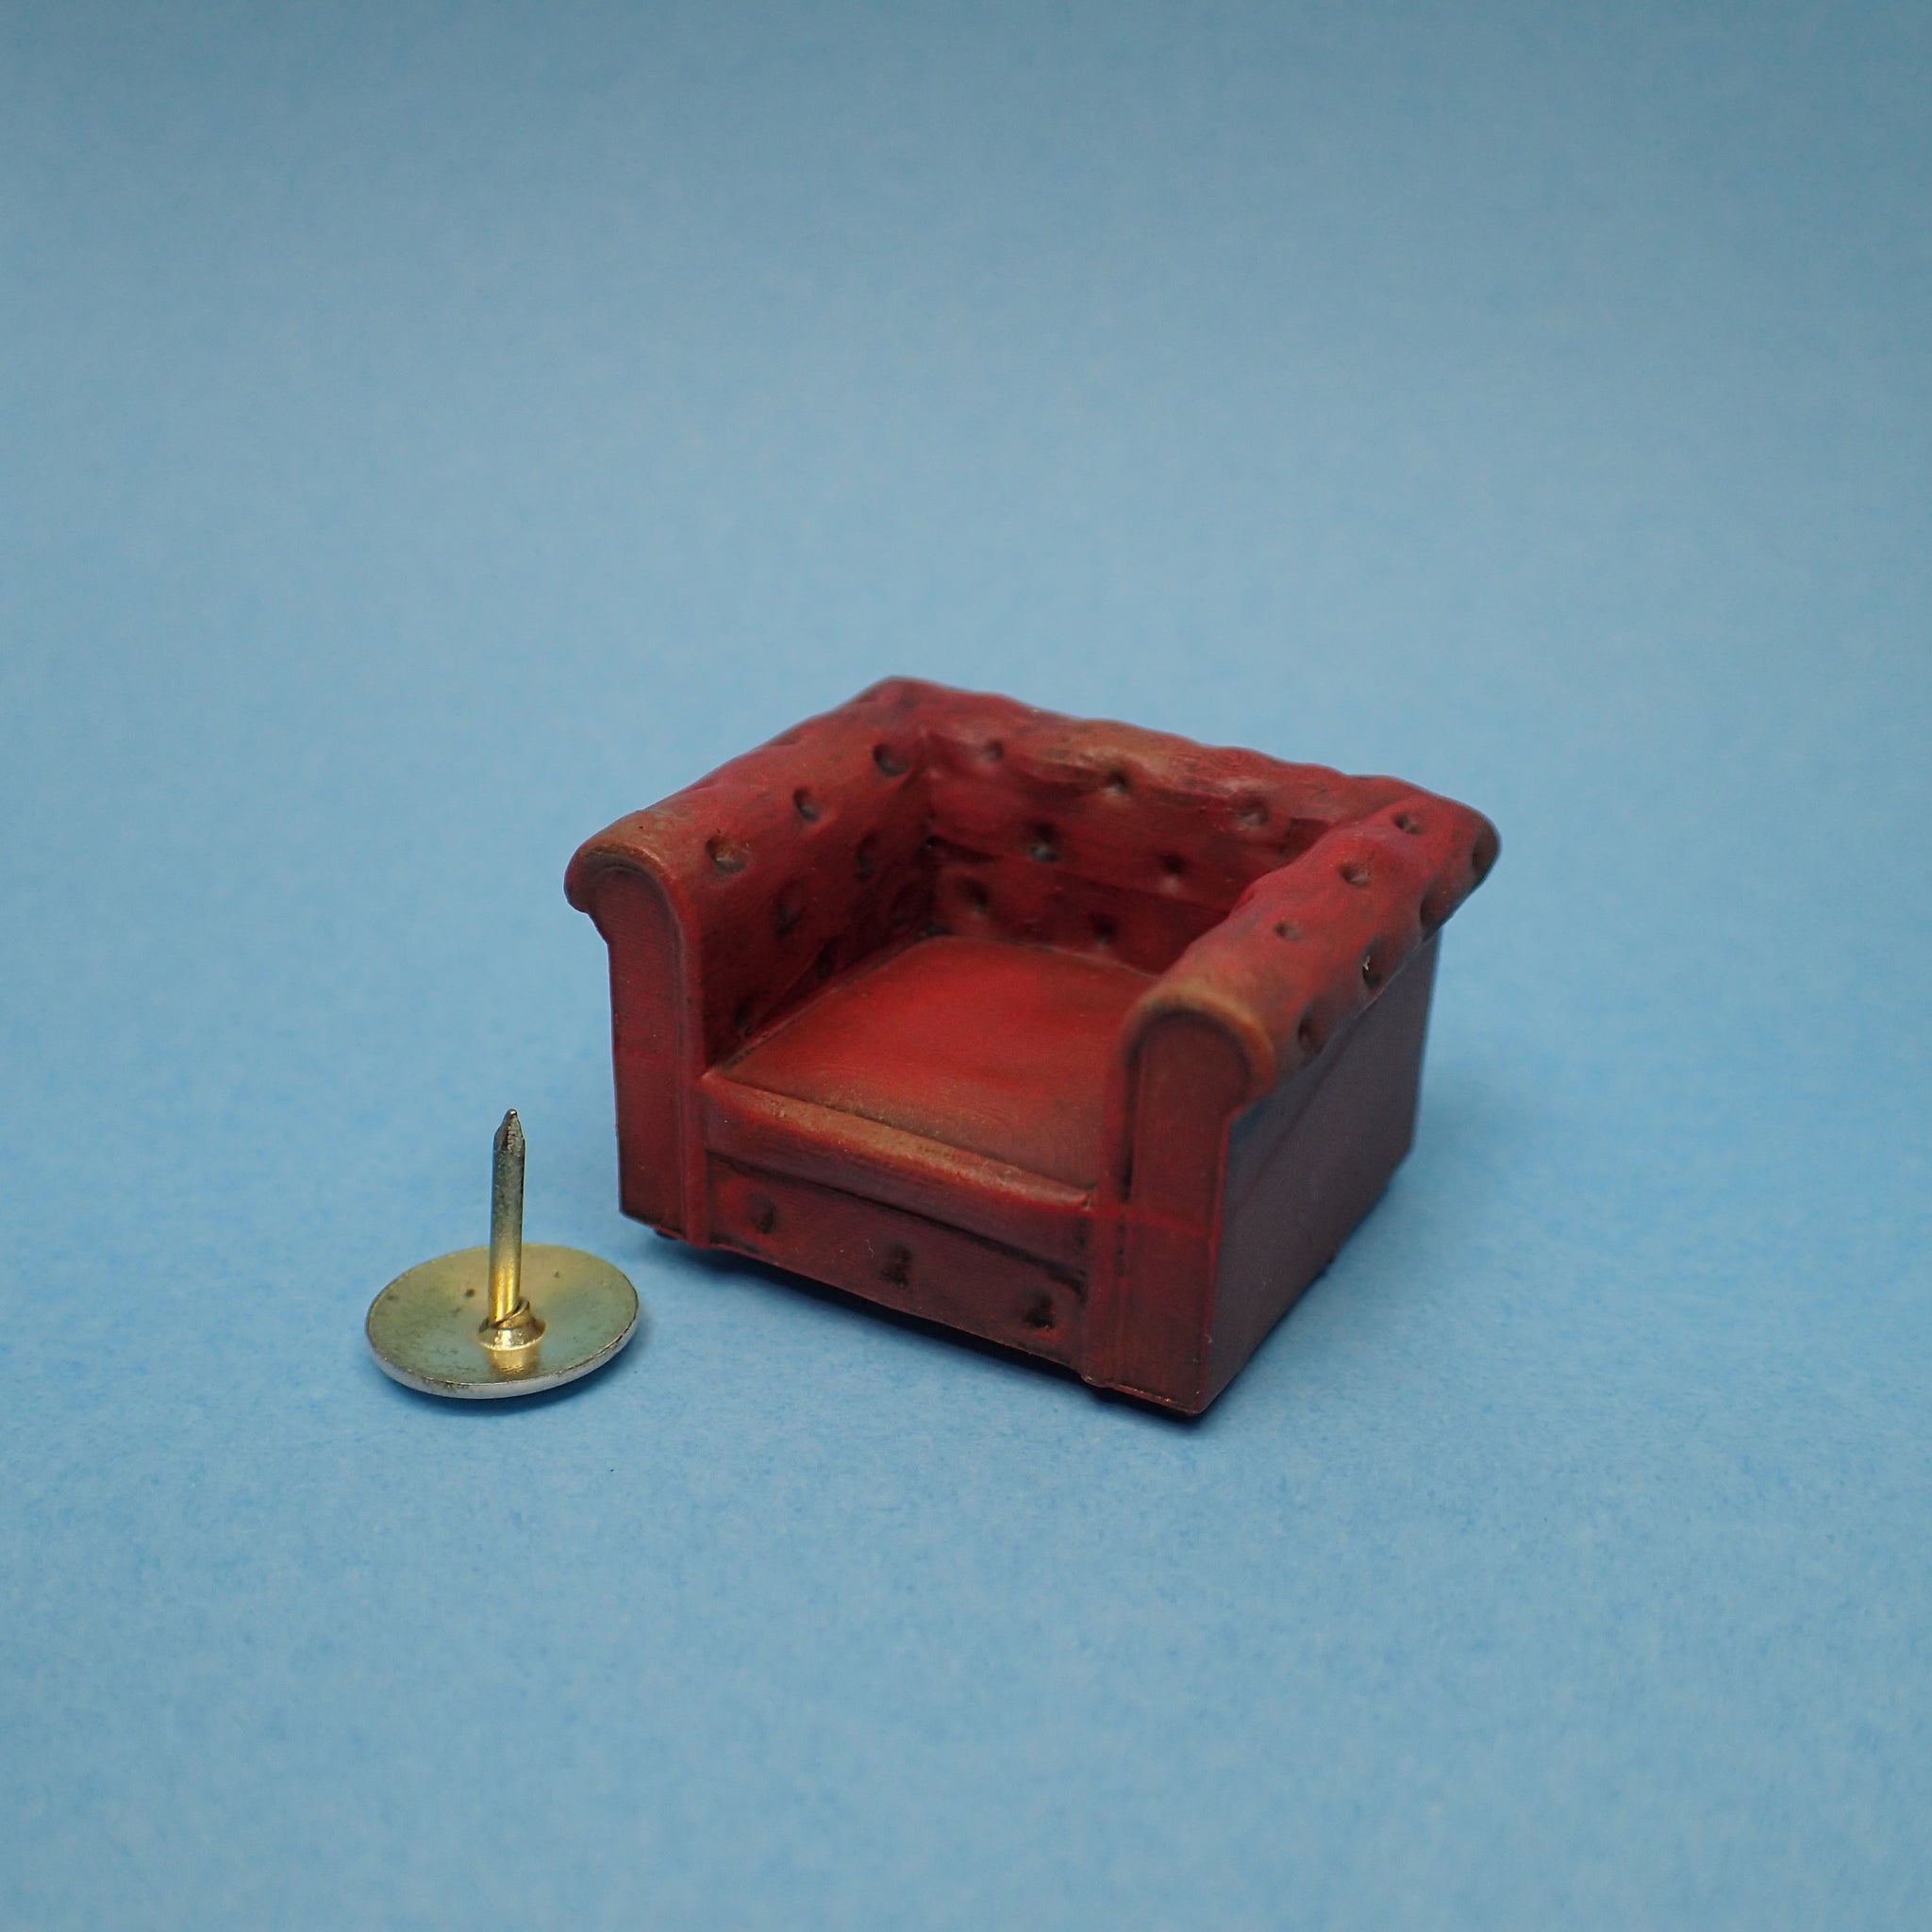 'Leather' Chesterfield armchair, 1/48th scale